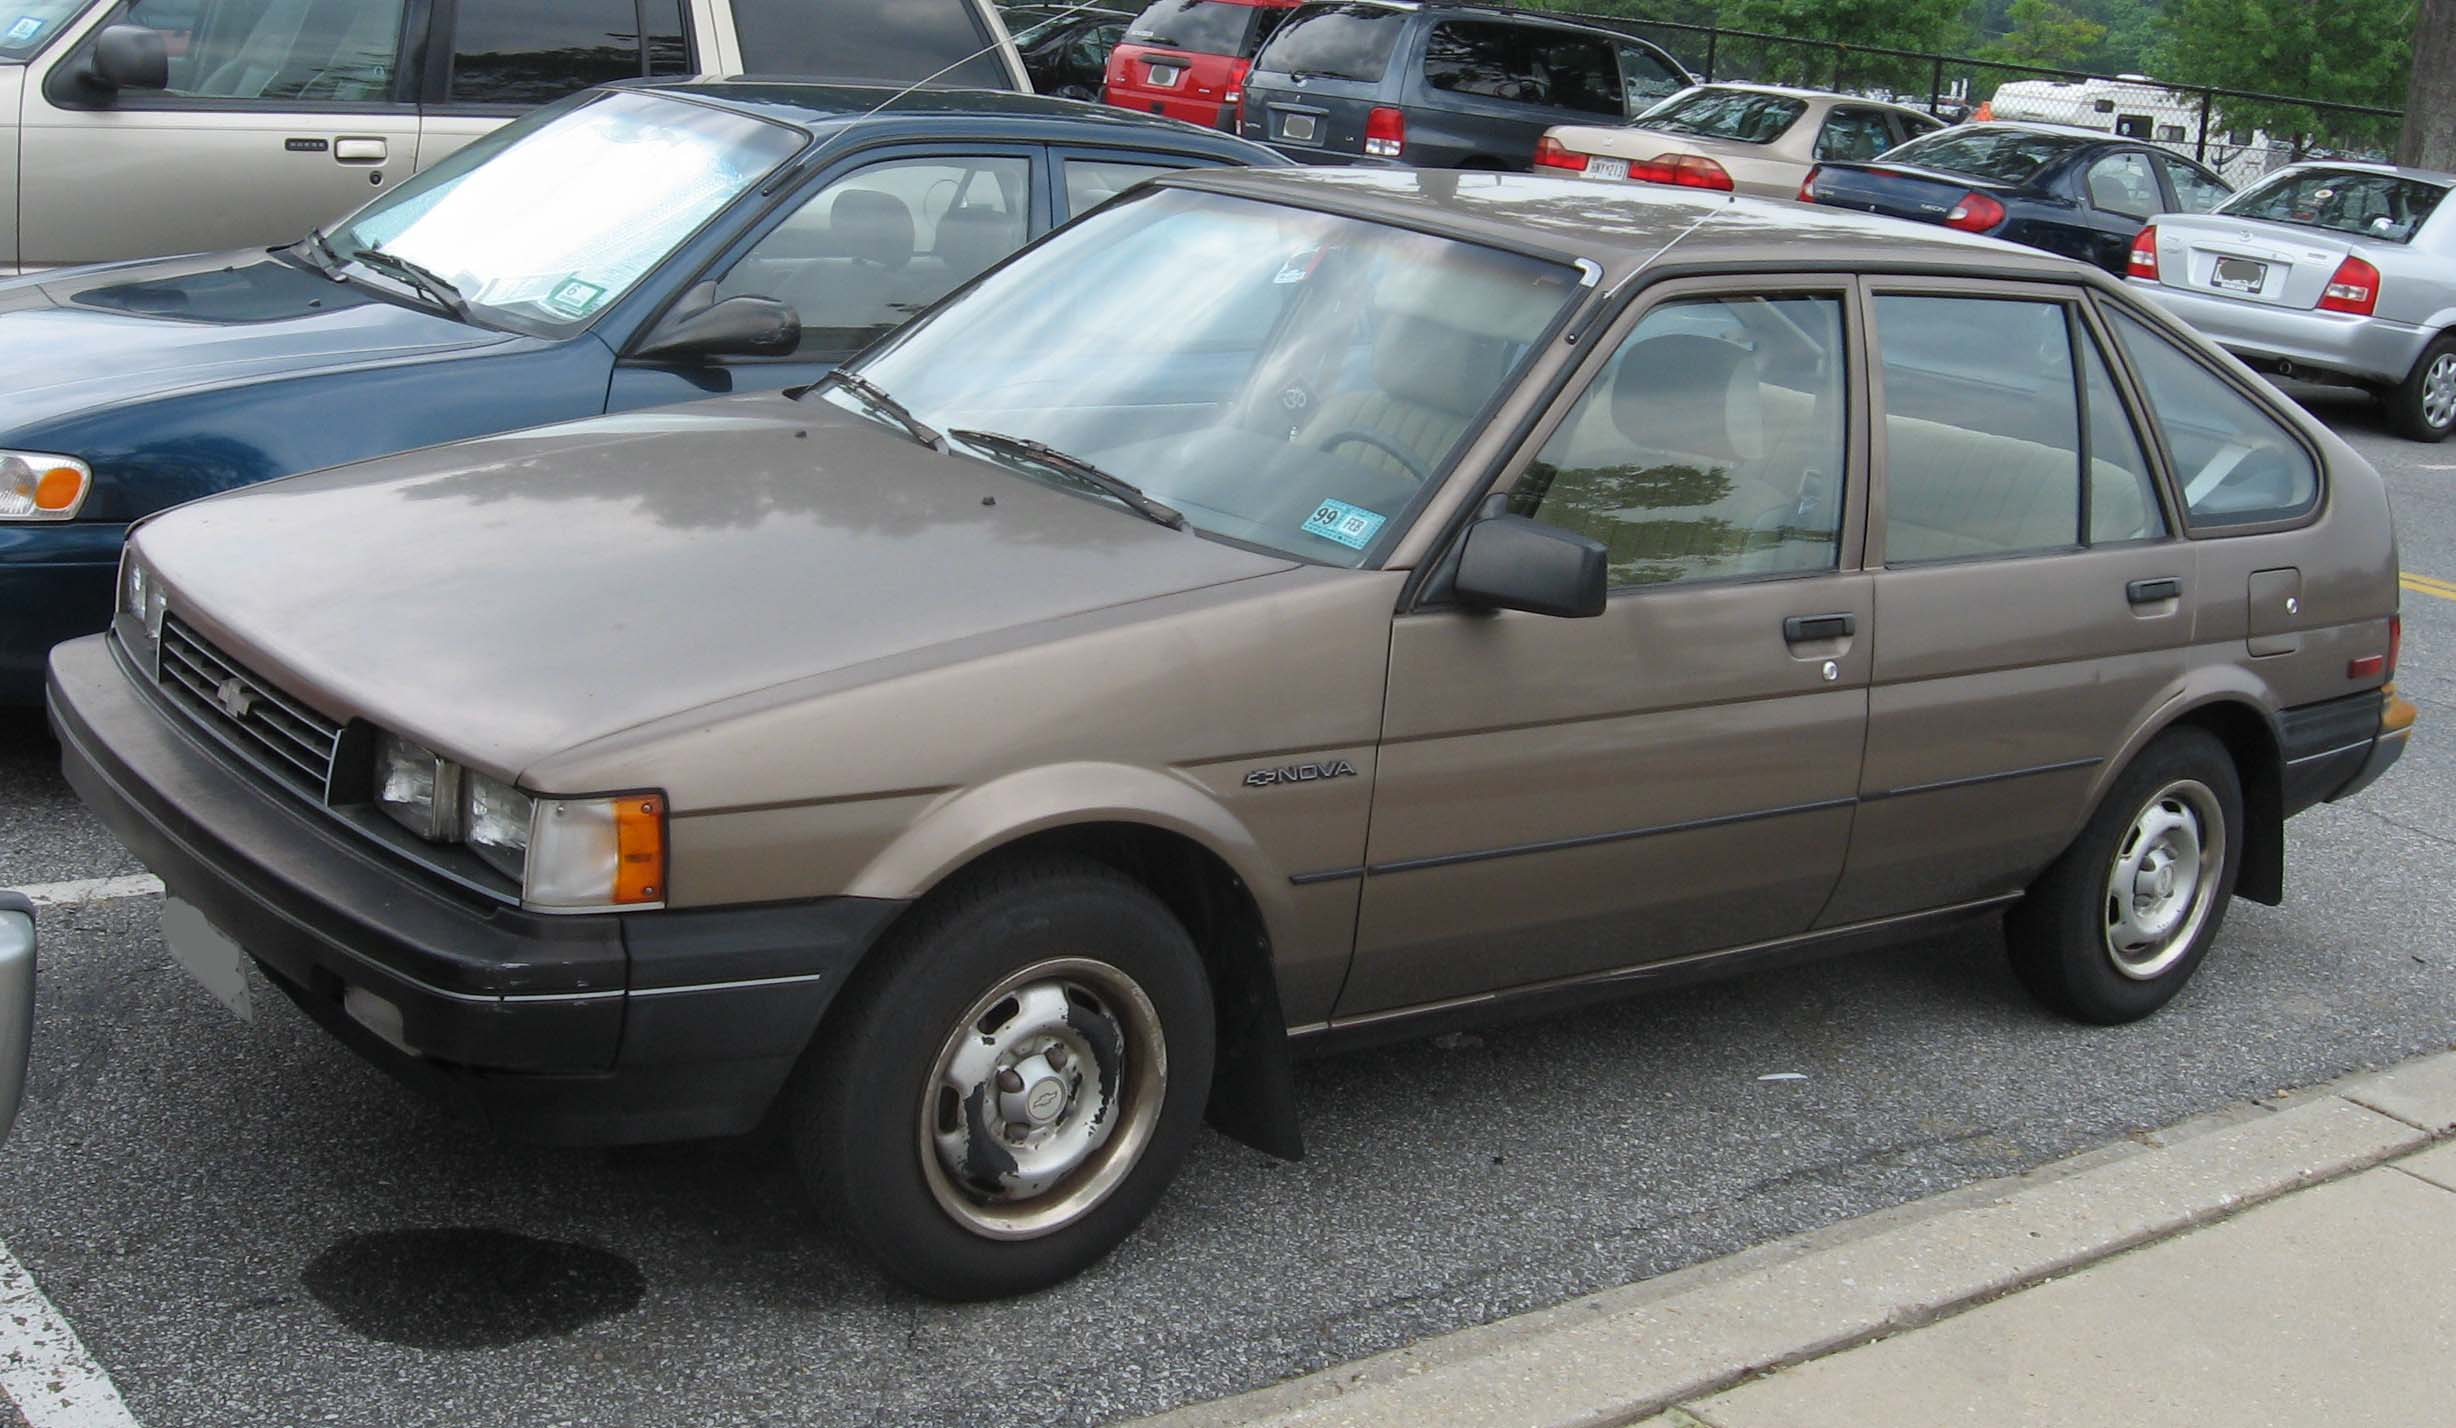 Chevrolet spectrum 1986 photo - 2